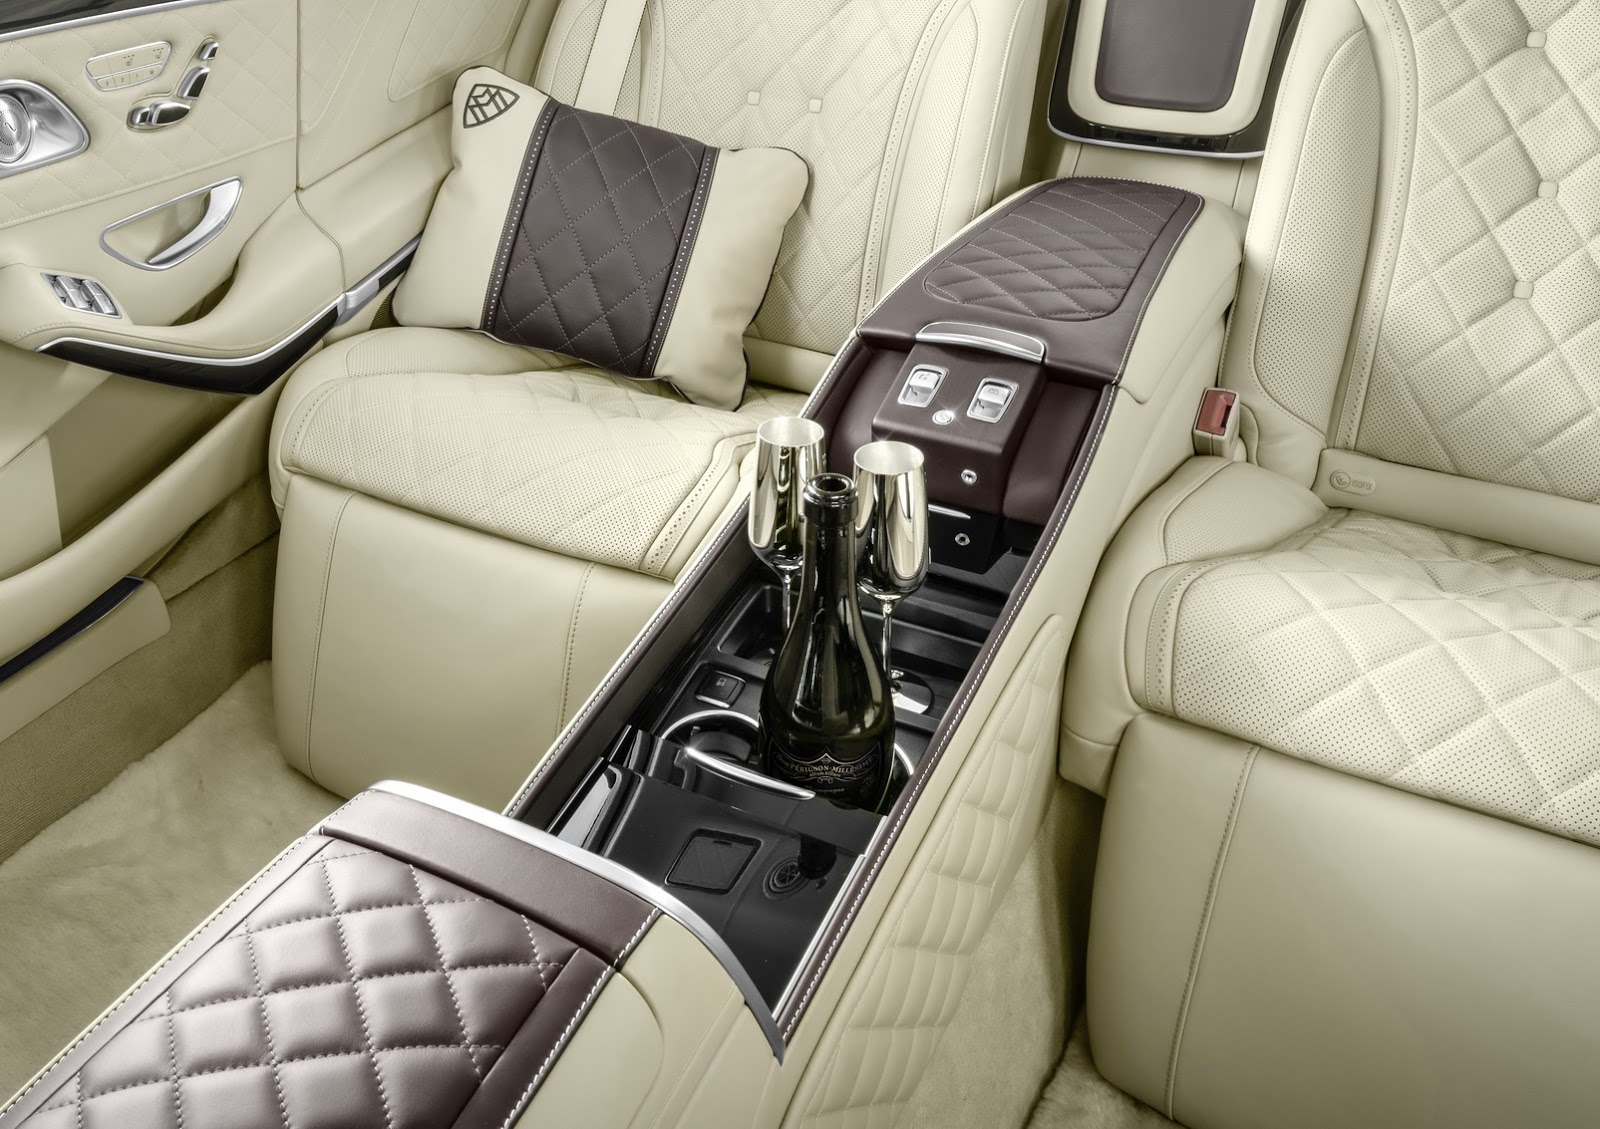 maybach interior 2015. leave a comment cancel reply maybach interior 2015